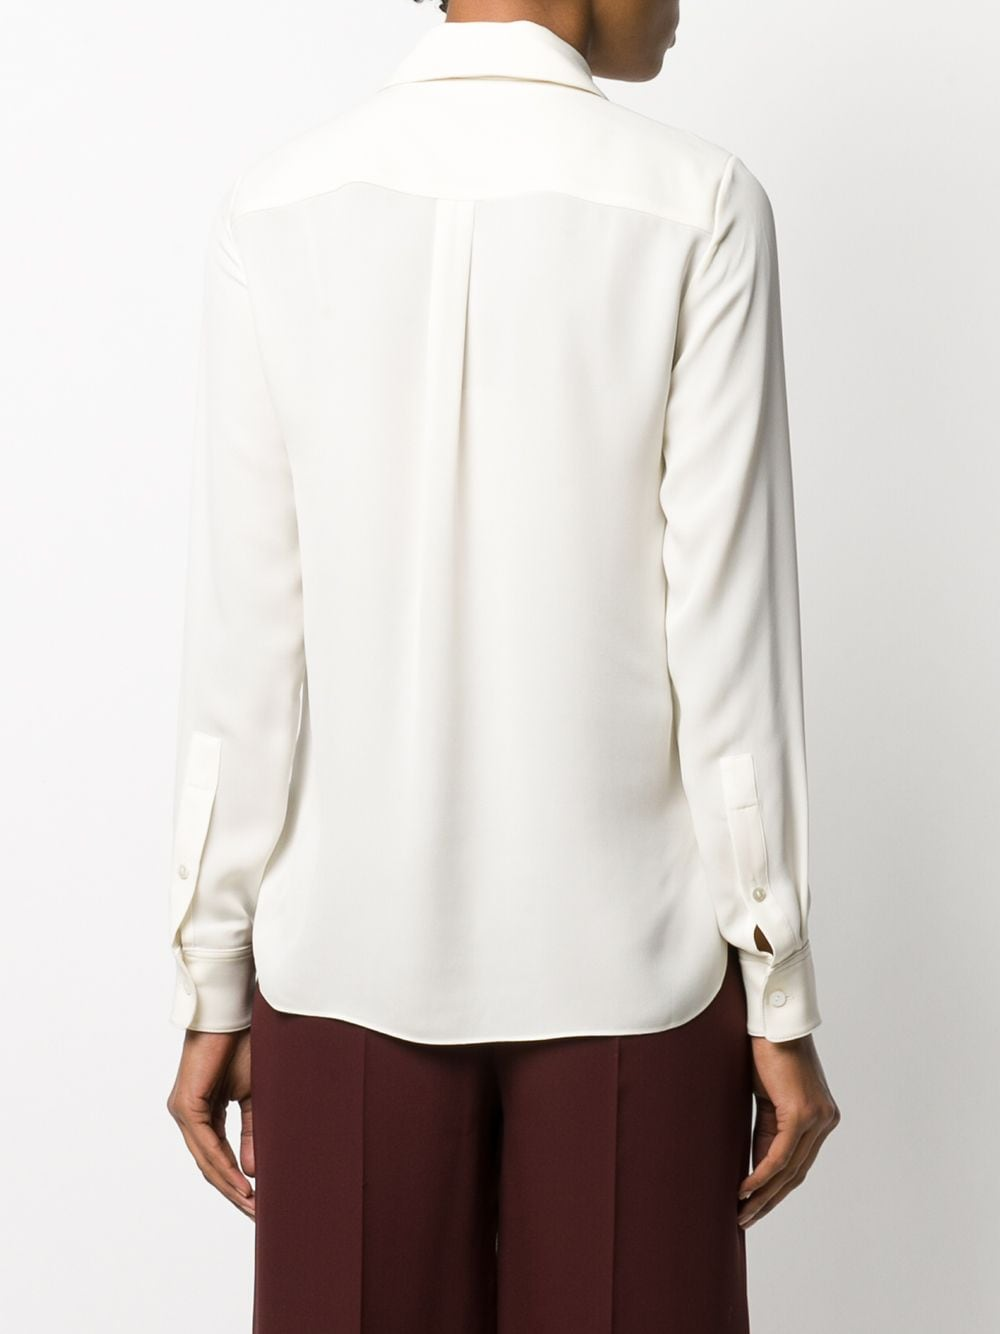 THEORY Blouse THEORY | Blouses | J1002502C05